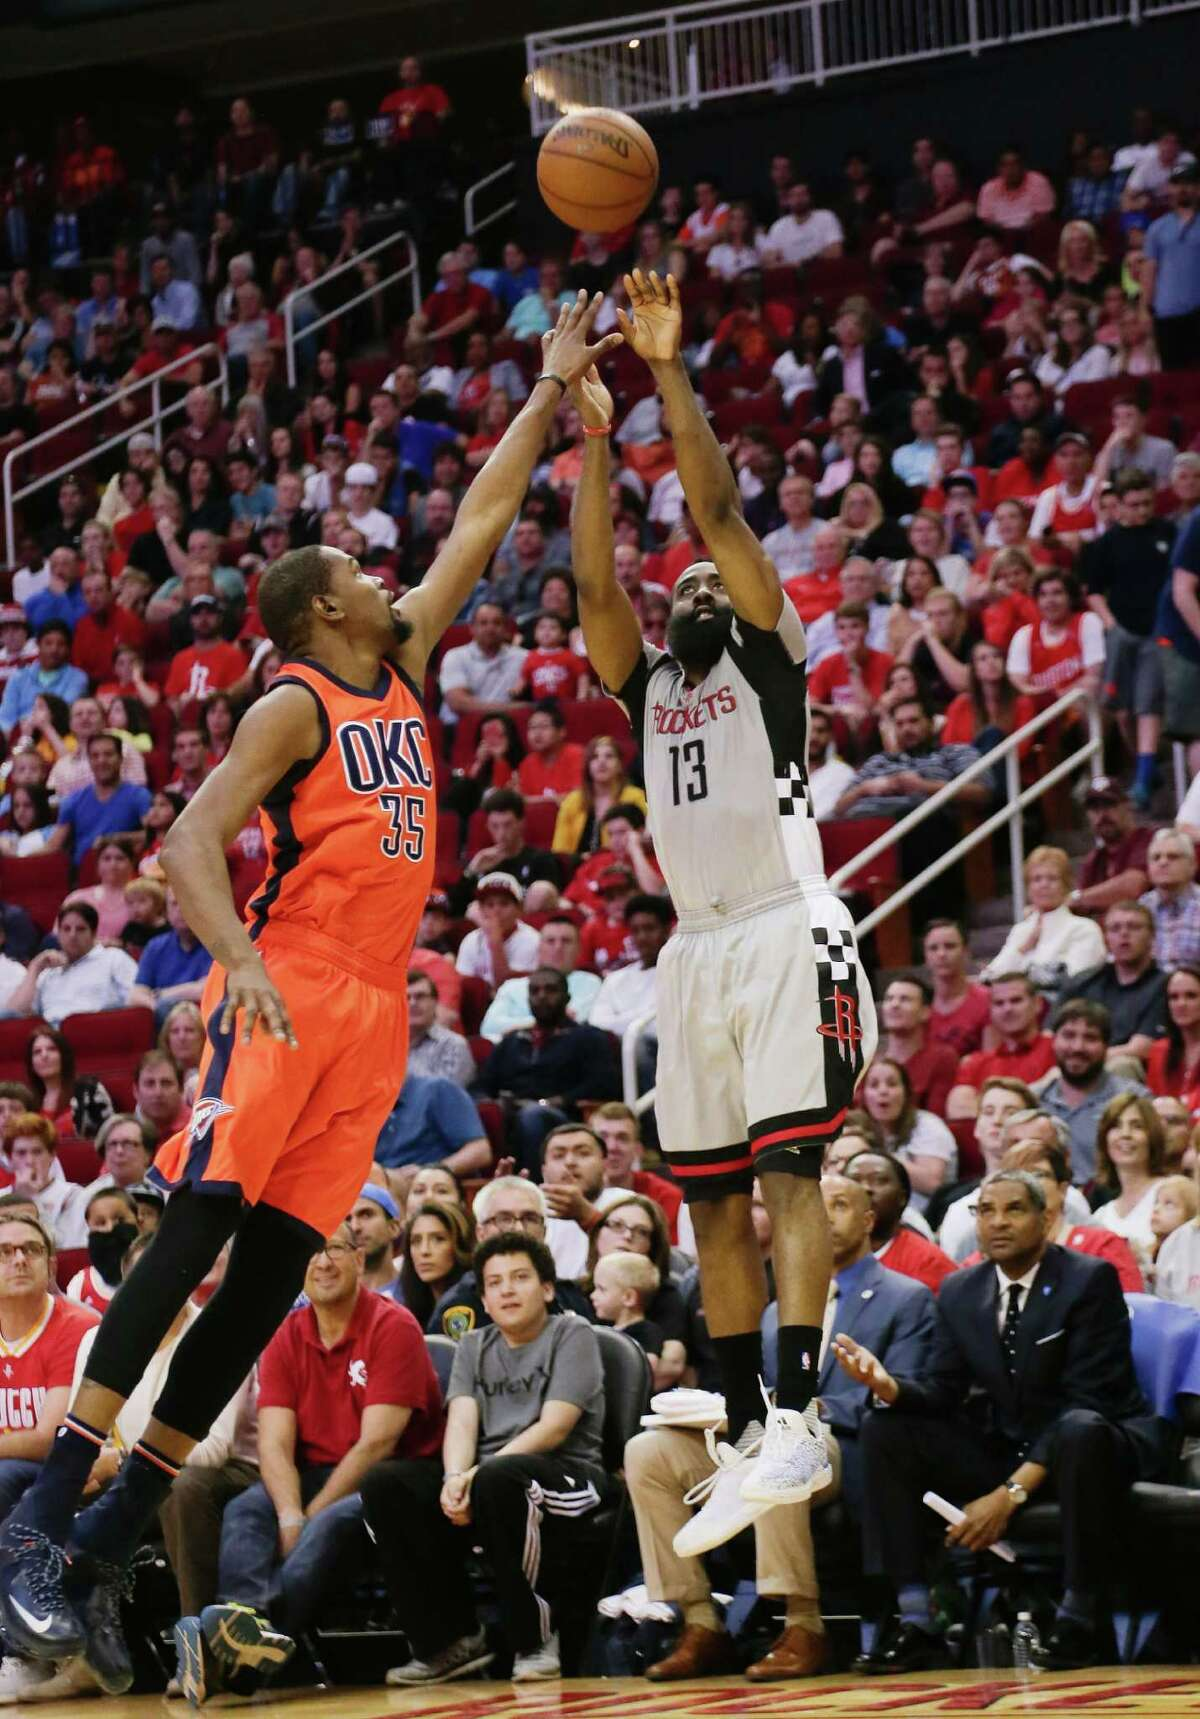 Houston Rockets' James Harden (13) shoots a three-point shot over Oklahoma City Thunder's Kevin Durant (35) during a basketball game Sunday, April 3, 2016, in Houston. Houston won 118-110.